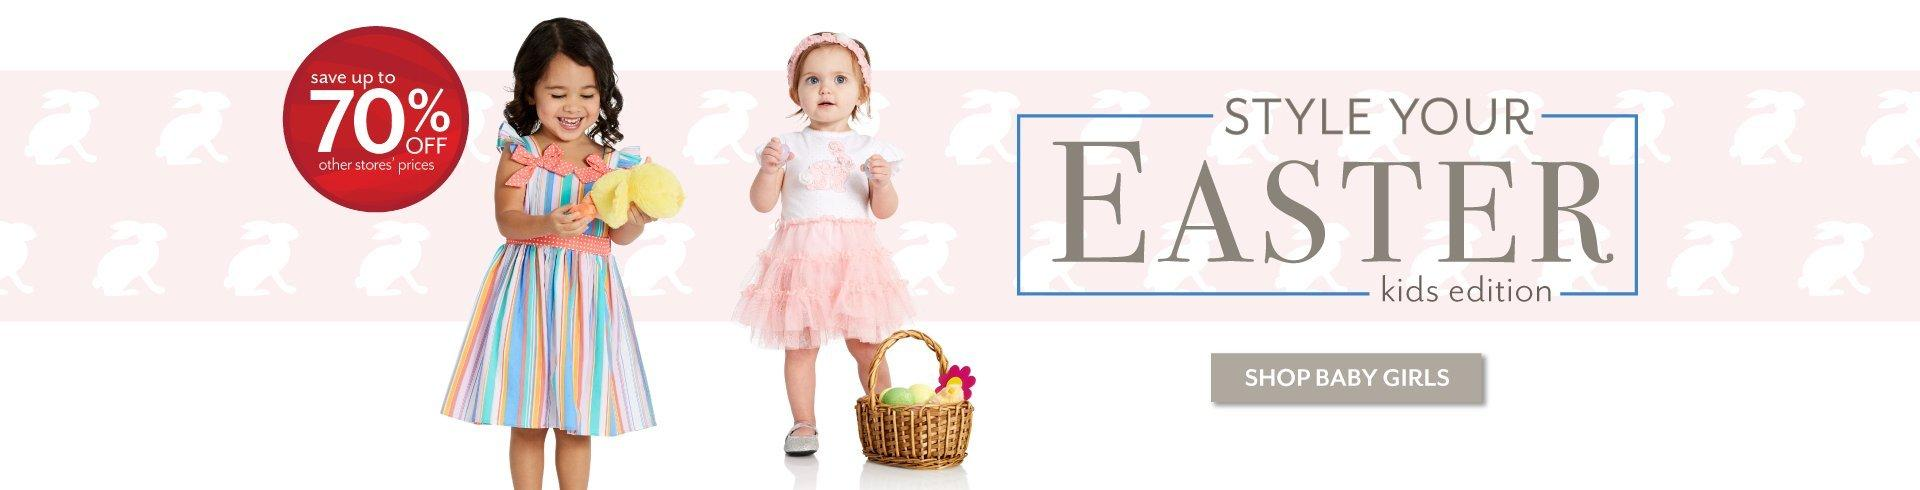 Style Your Easter - Shop the latest styles for Baby Girls at Burkes Outlet